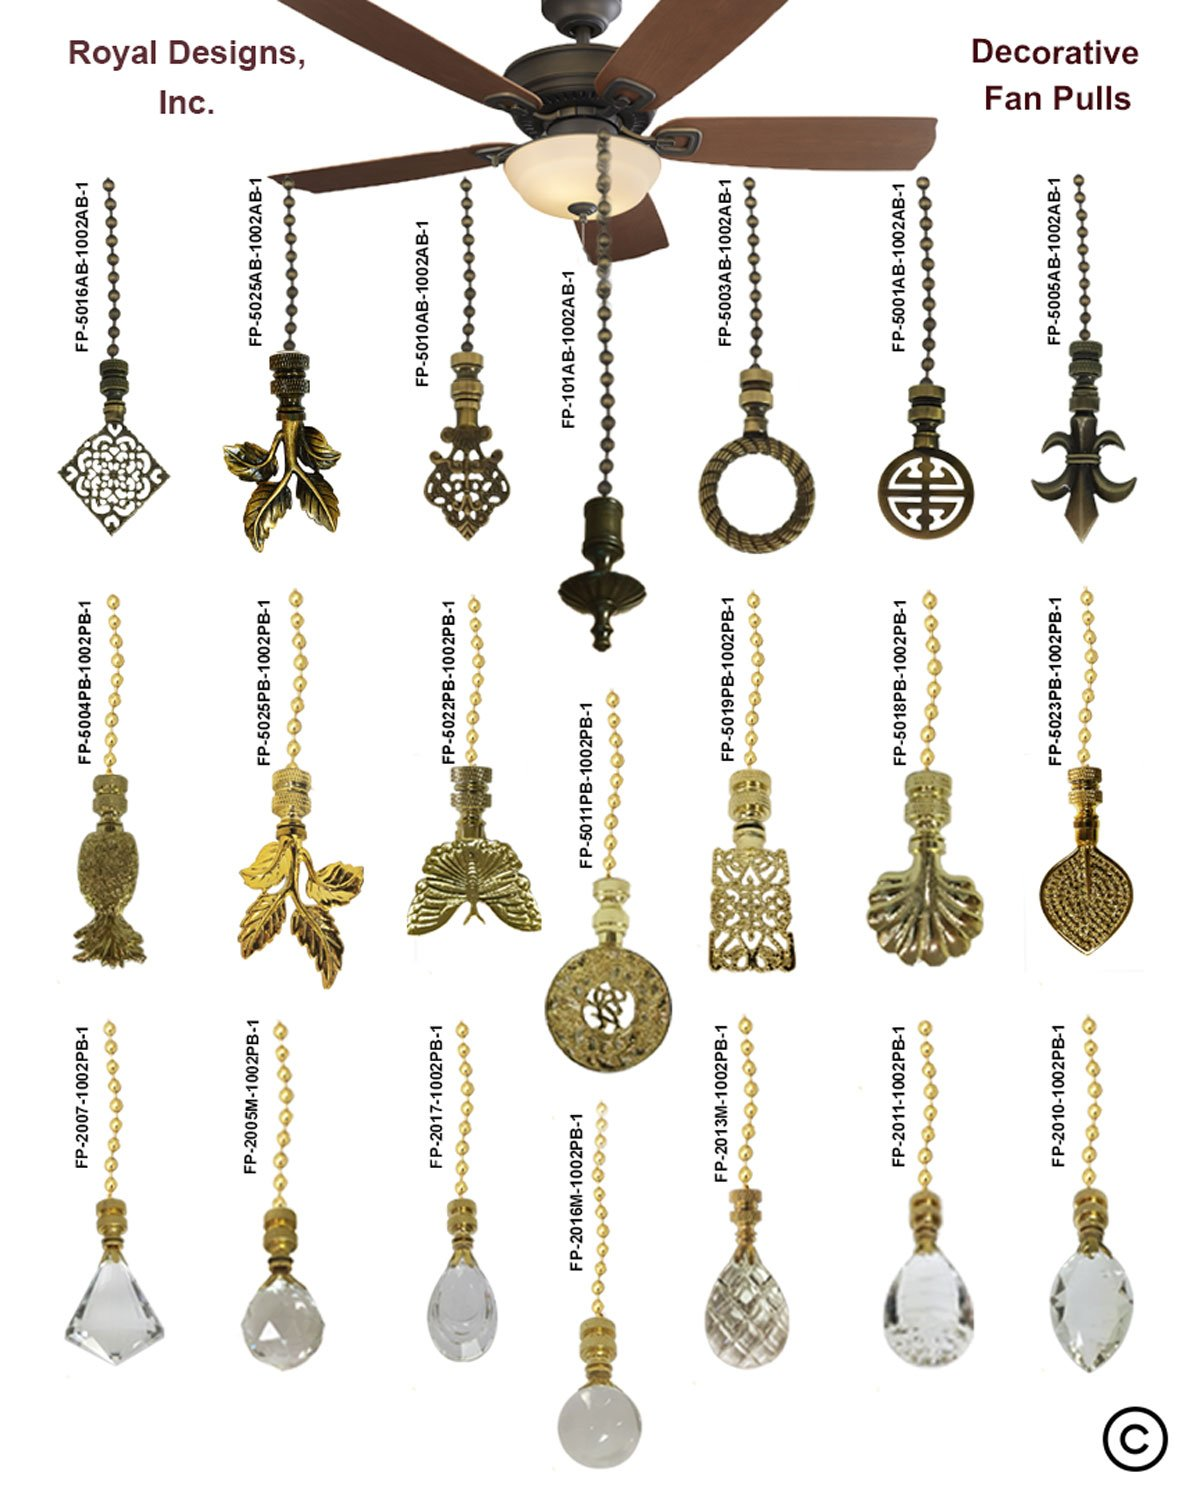 Royal Designs Fan Pull Chain with Radiant Teardrop Clear Crystal Finial